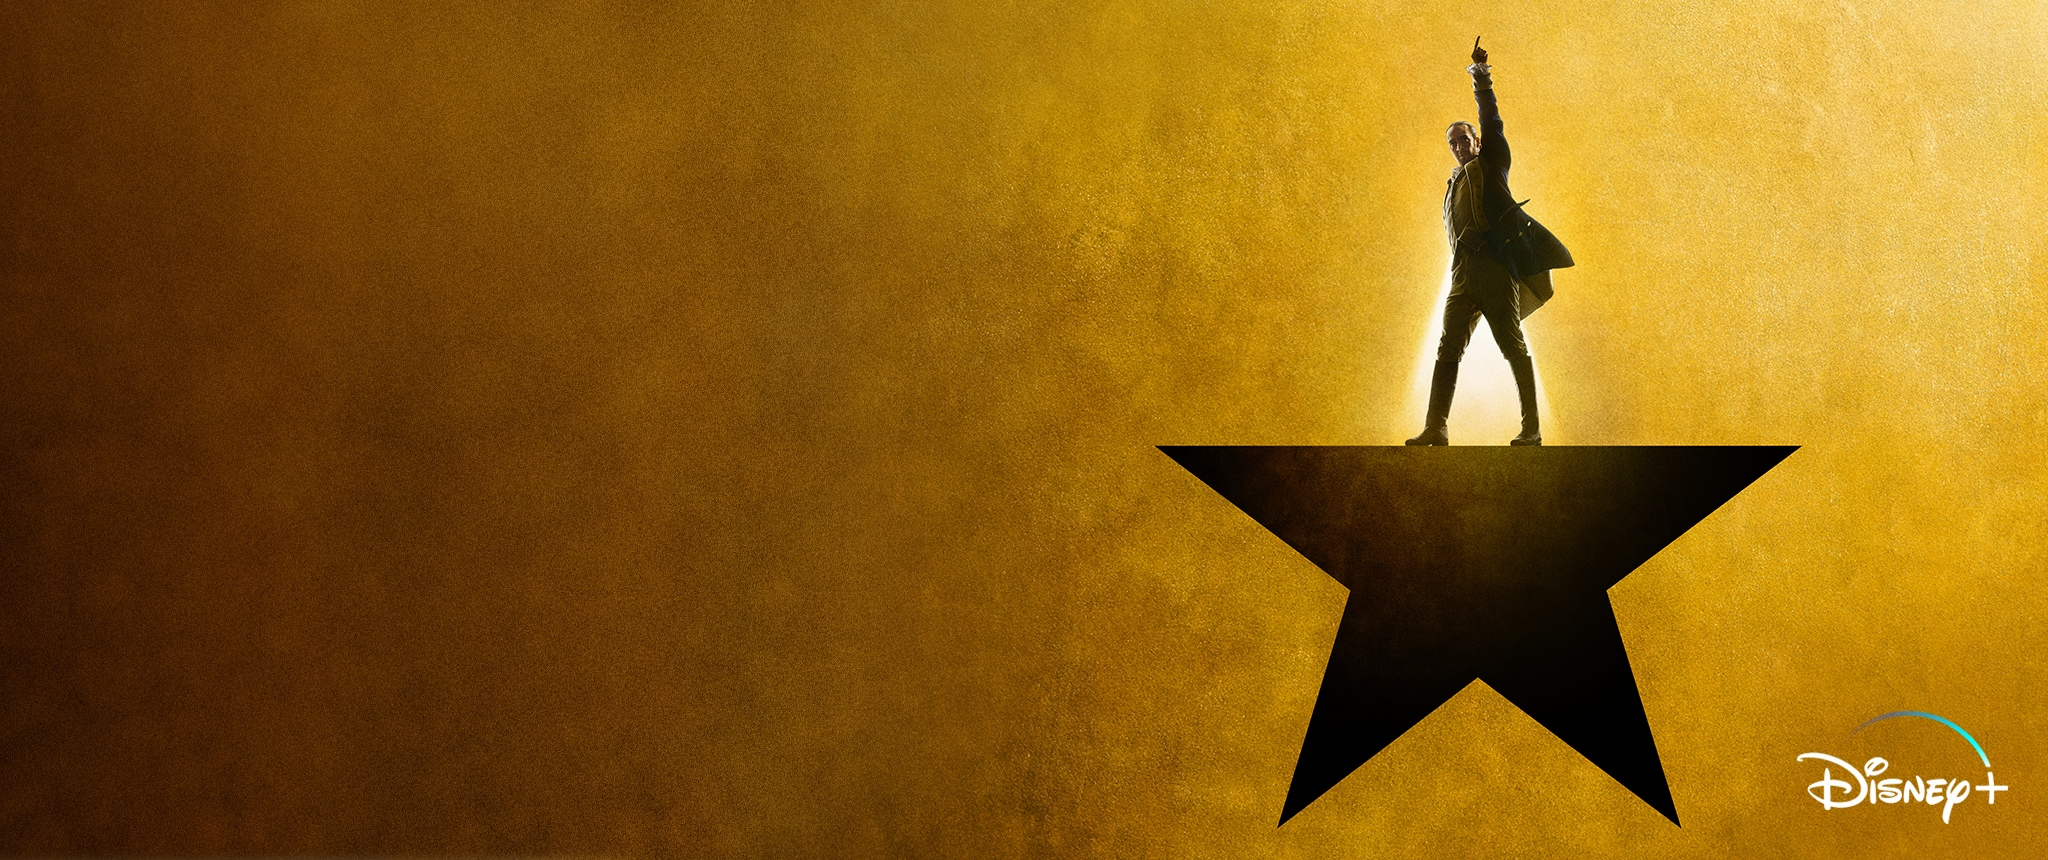 Hero - Disney+ - Hamilton Now Streaming on Disney+ (New Keyart)